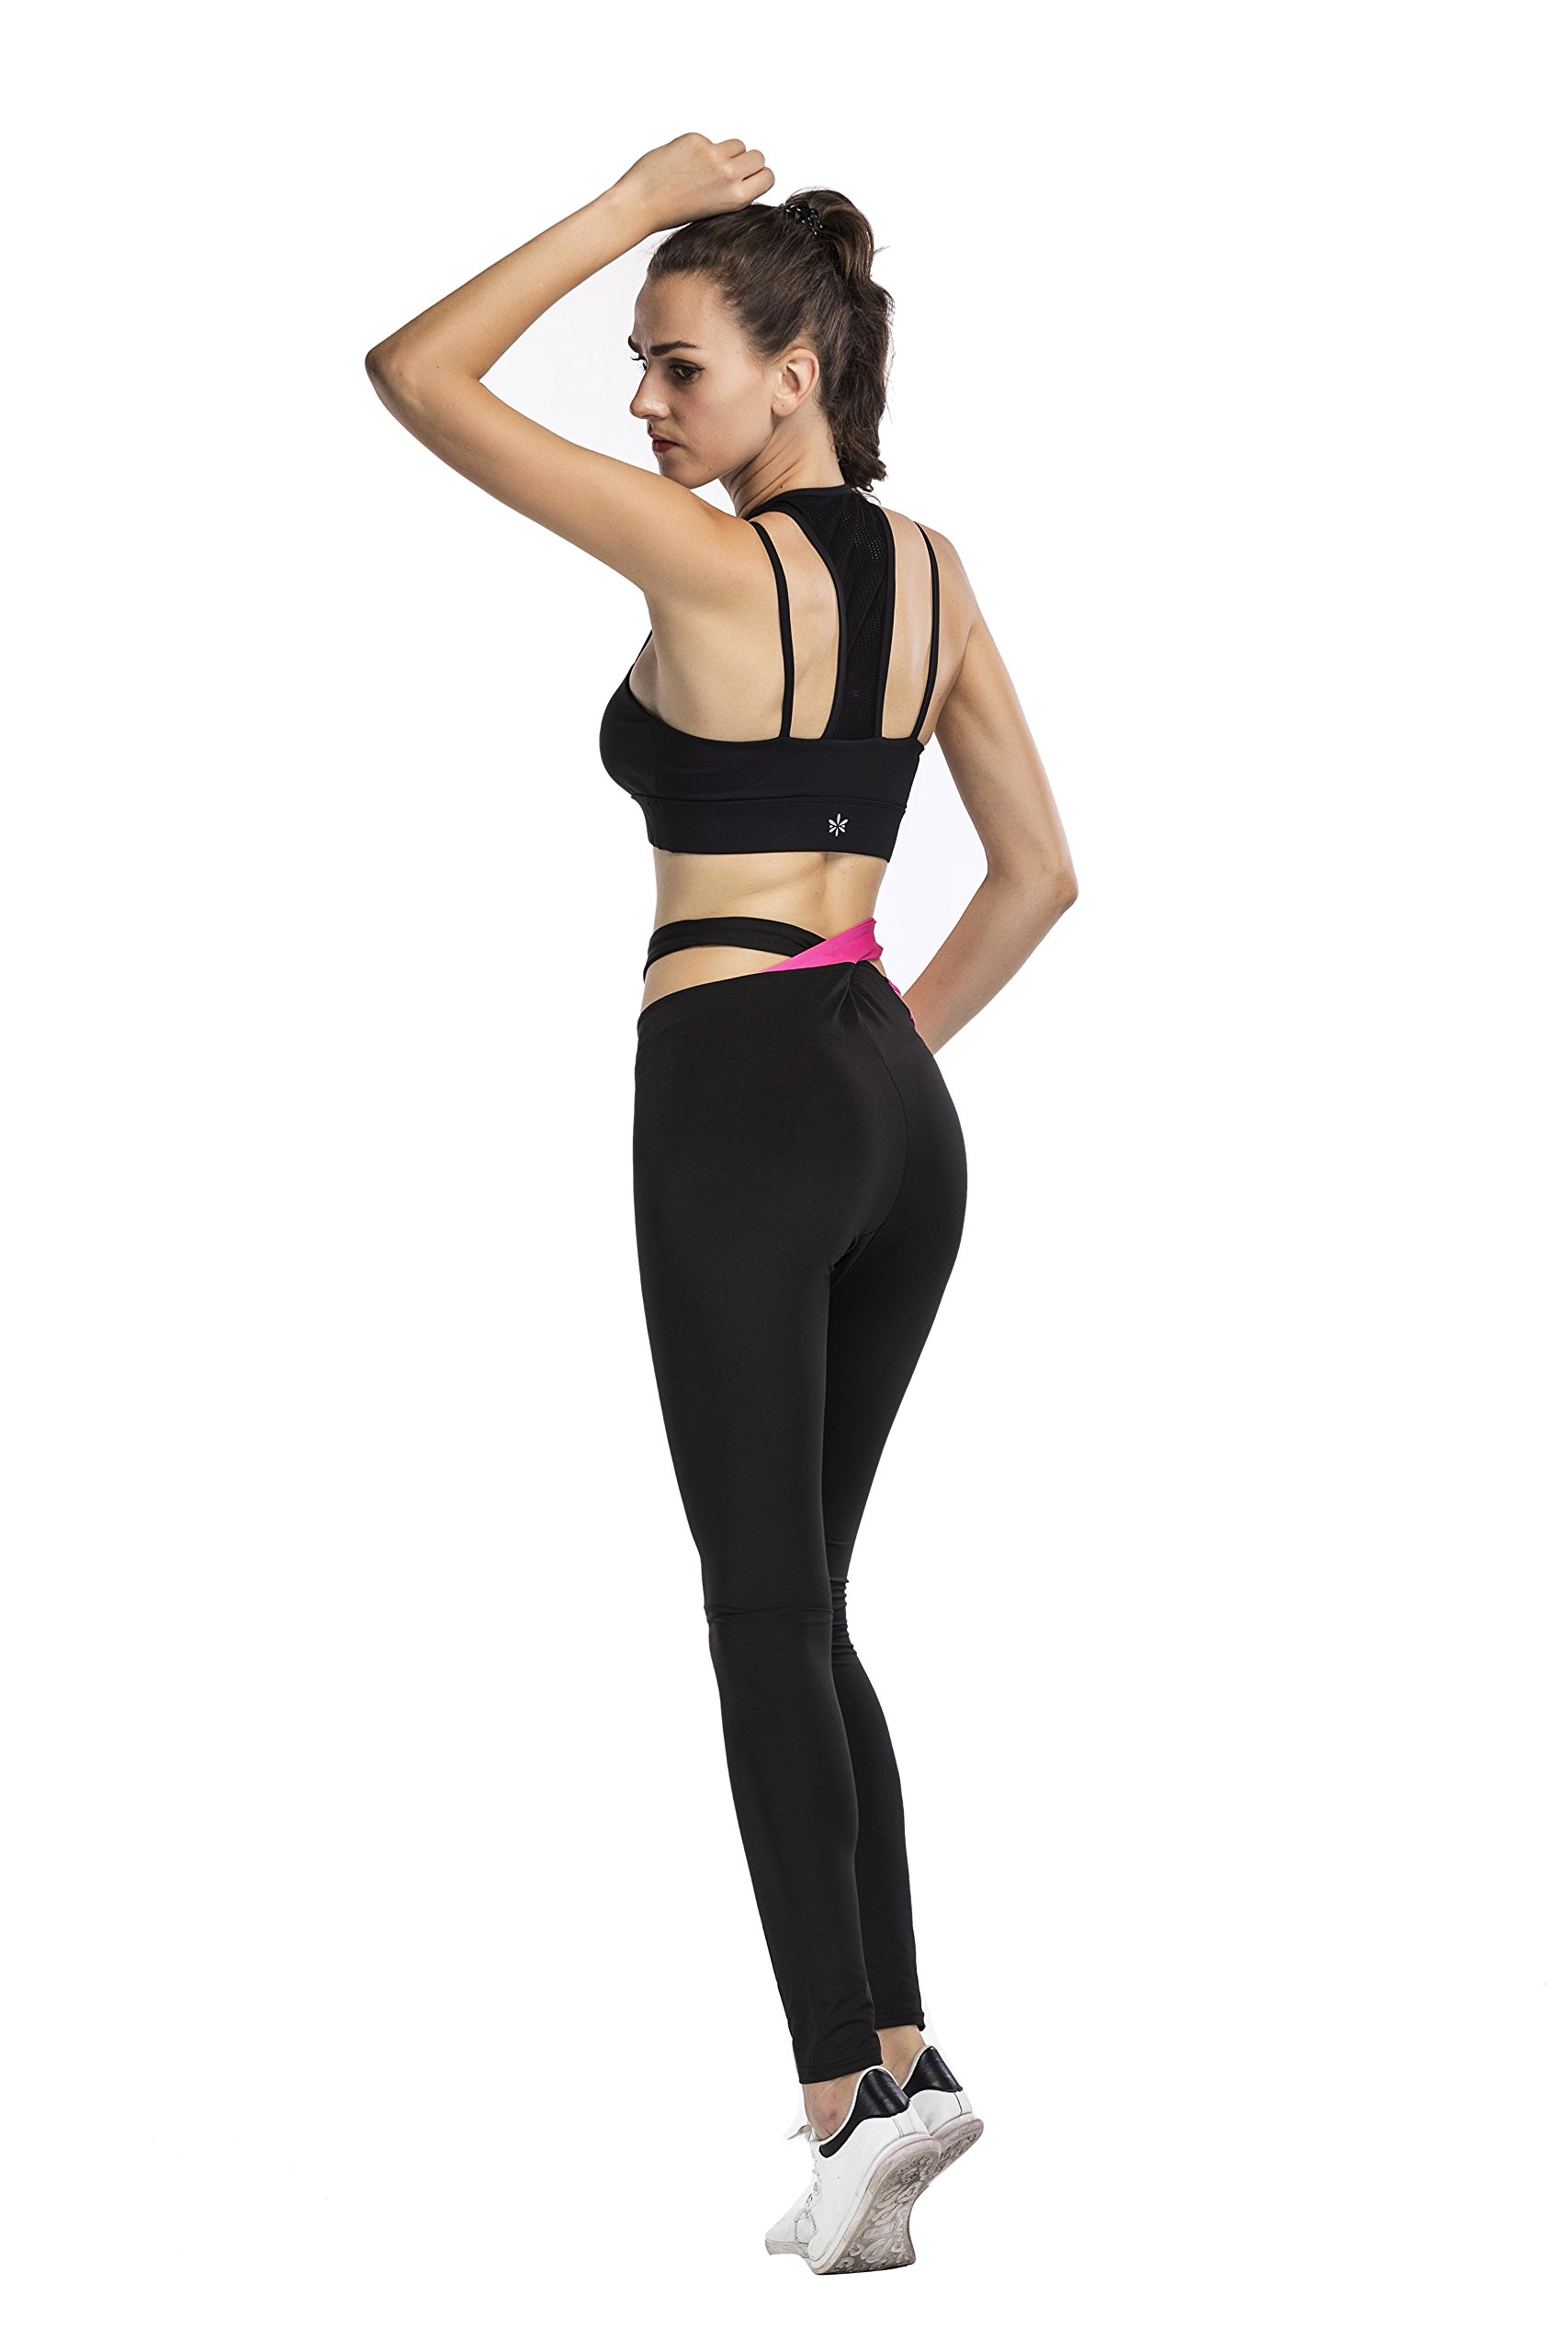 Gymsupply Women\'s Yoga Capri Pants Sport Tights Workout Running Leggings With Side Pocket and Sexy Waistband YW3(X-Large)